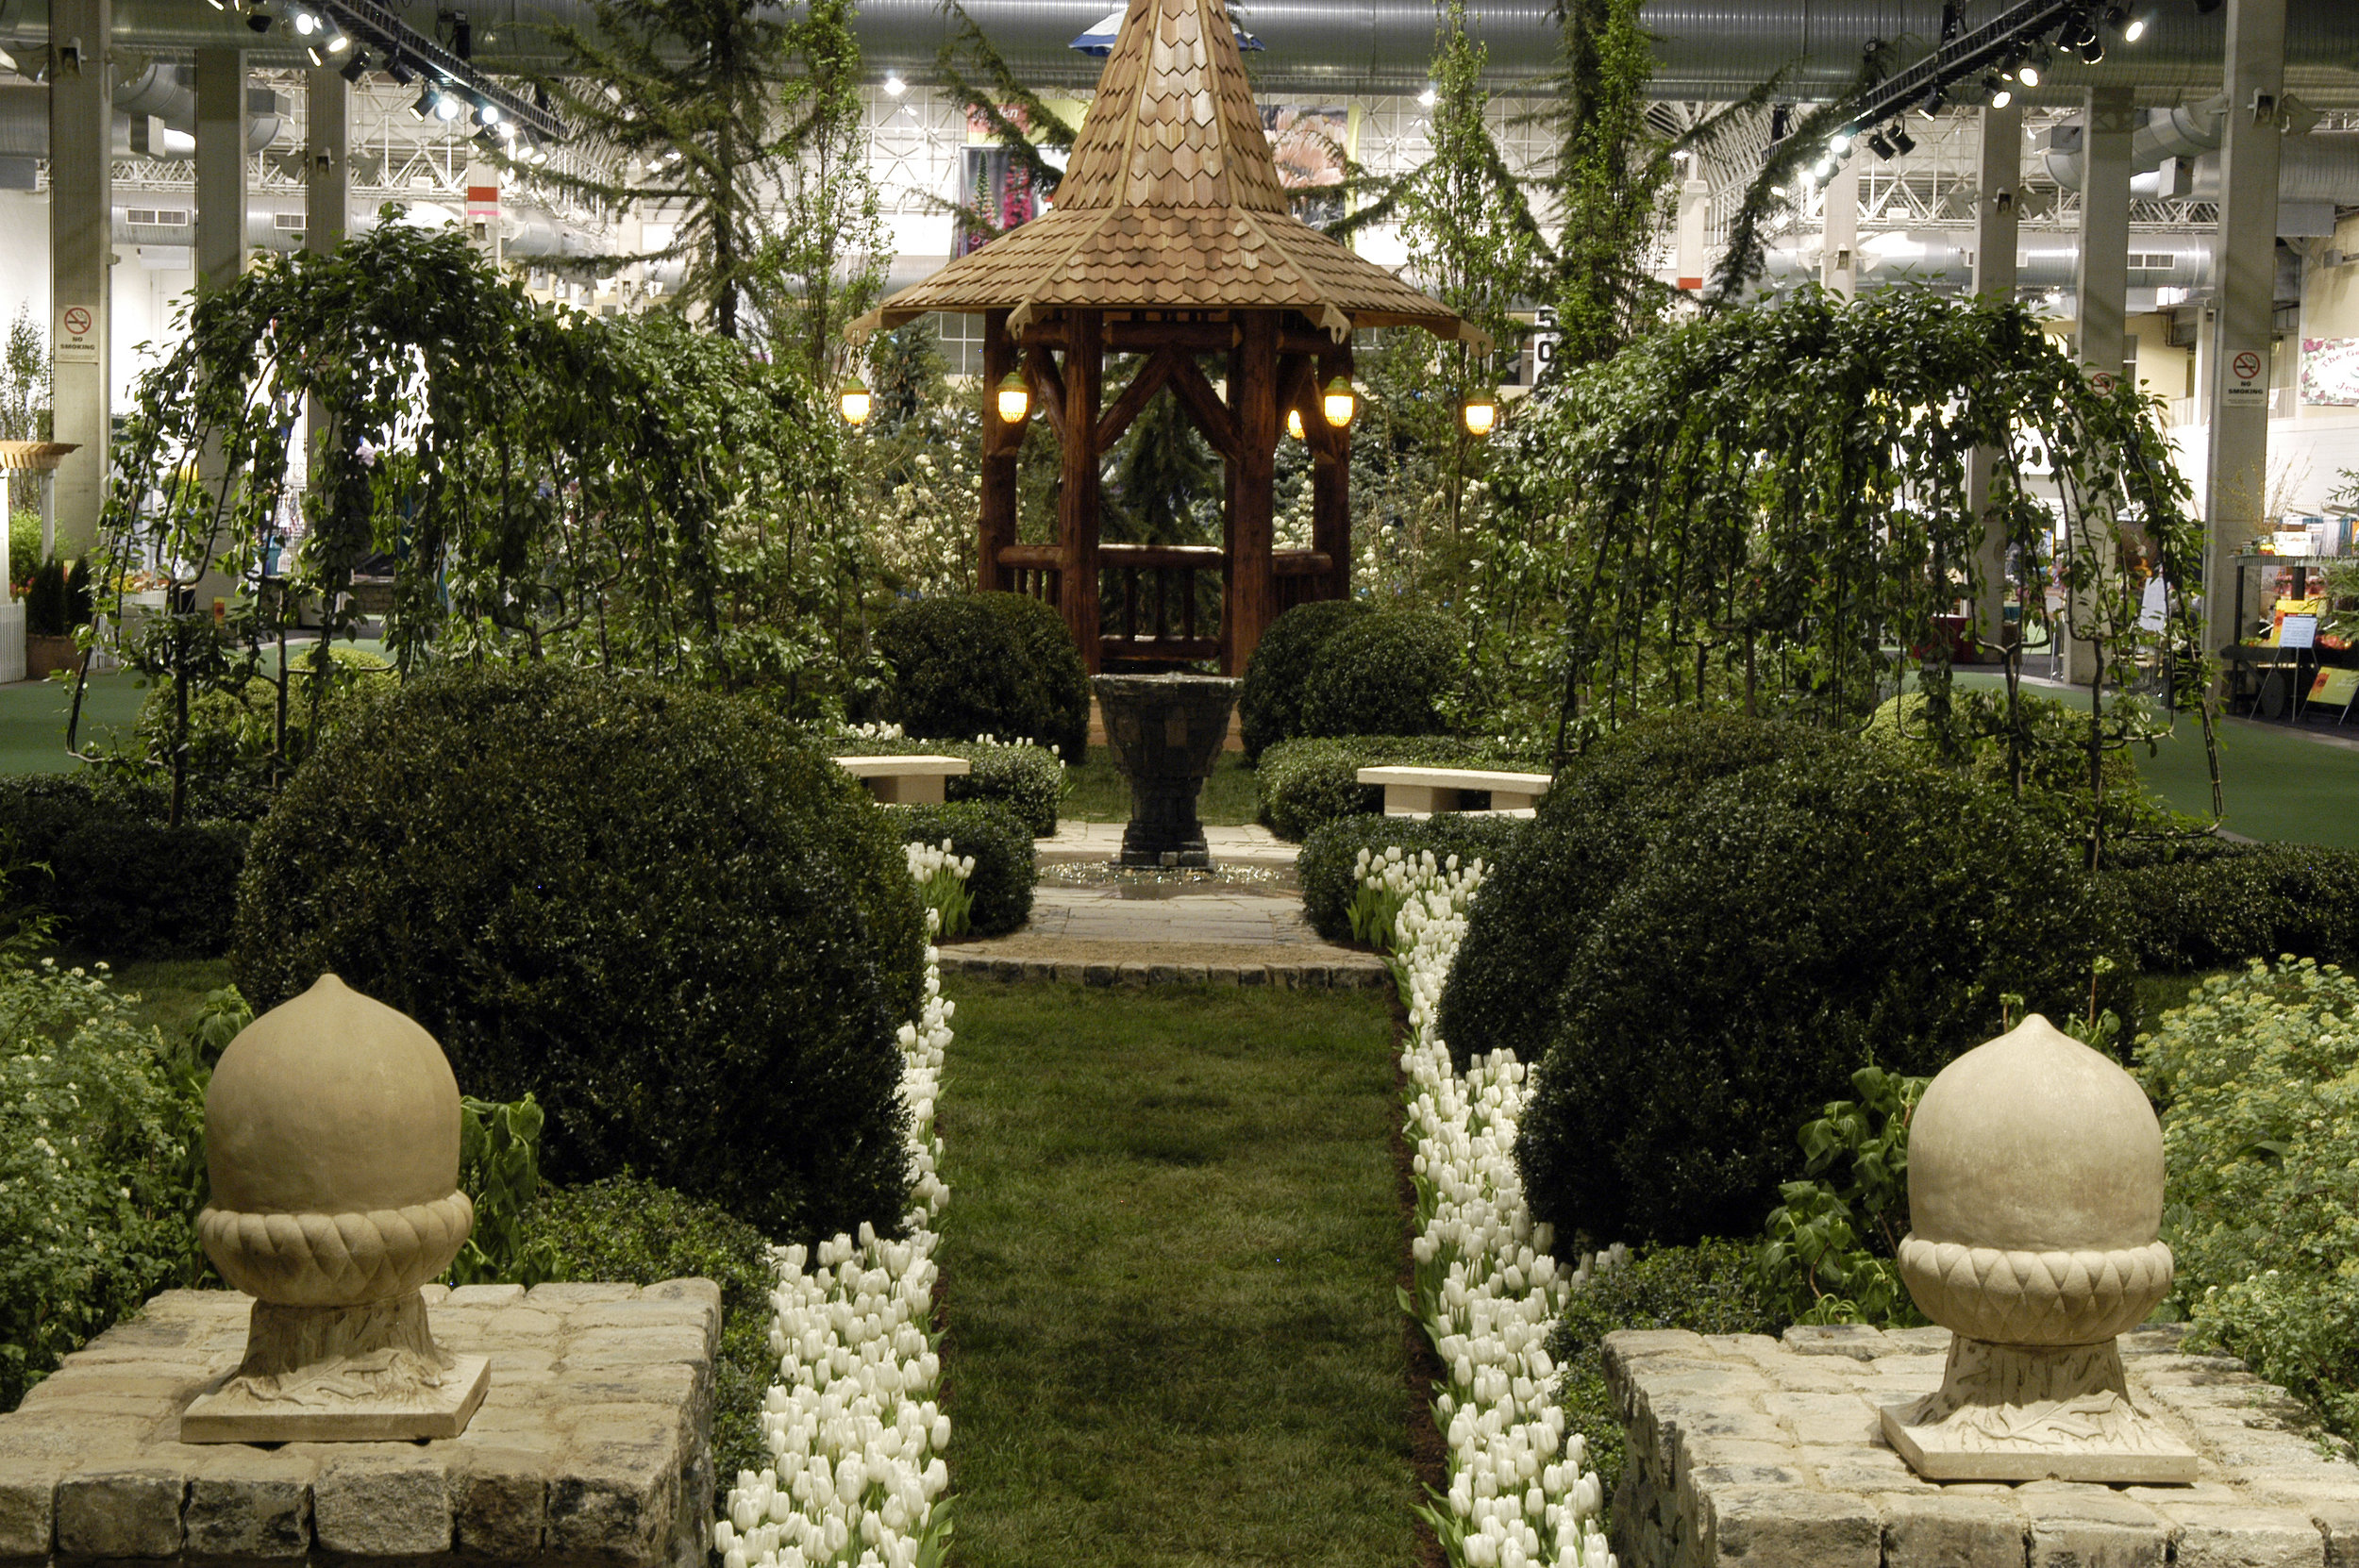 Chicago Tribune, 2005 - A Renascent PerspectiveIn partnership with Chelsea Flower Show's award-winning designers, Tim Redwood of Redwood Stone in Wells, England, and Andrew McIndoe of Hillier Garden Centres in Romsey, England, John Cullen of Celtic Garden Imports in Ann Arbor, Mich. returns for a third year at the Chicago Flower & Garden Show with a recreation of the Abbot's private garden at the Medieval Glastonbury Abbey.